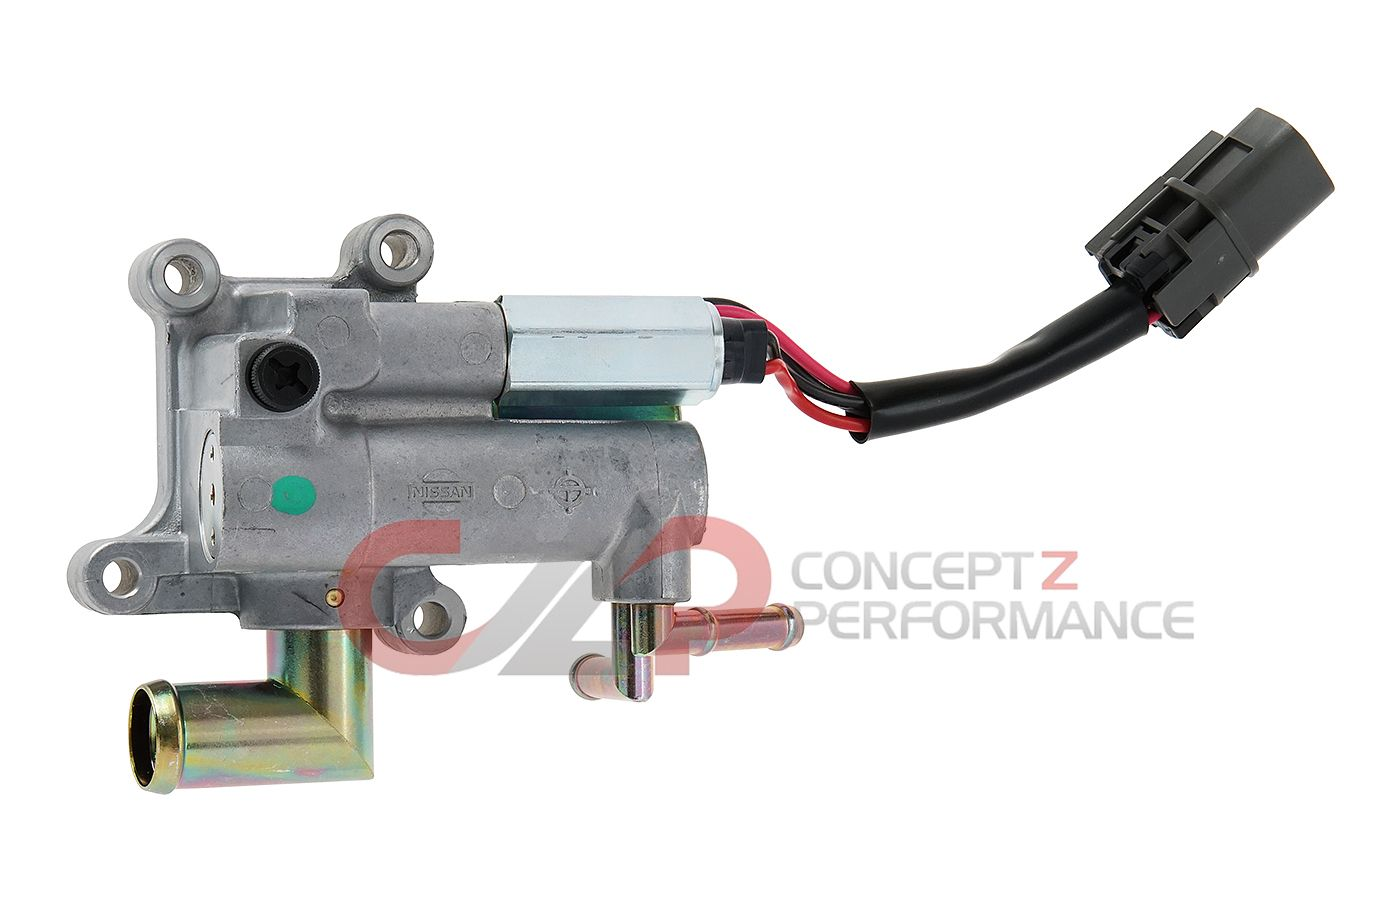 Nissan OEM Idle Air Control Valve AAC IACV - SR20DET S13